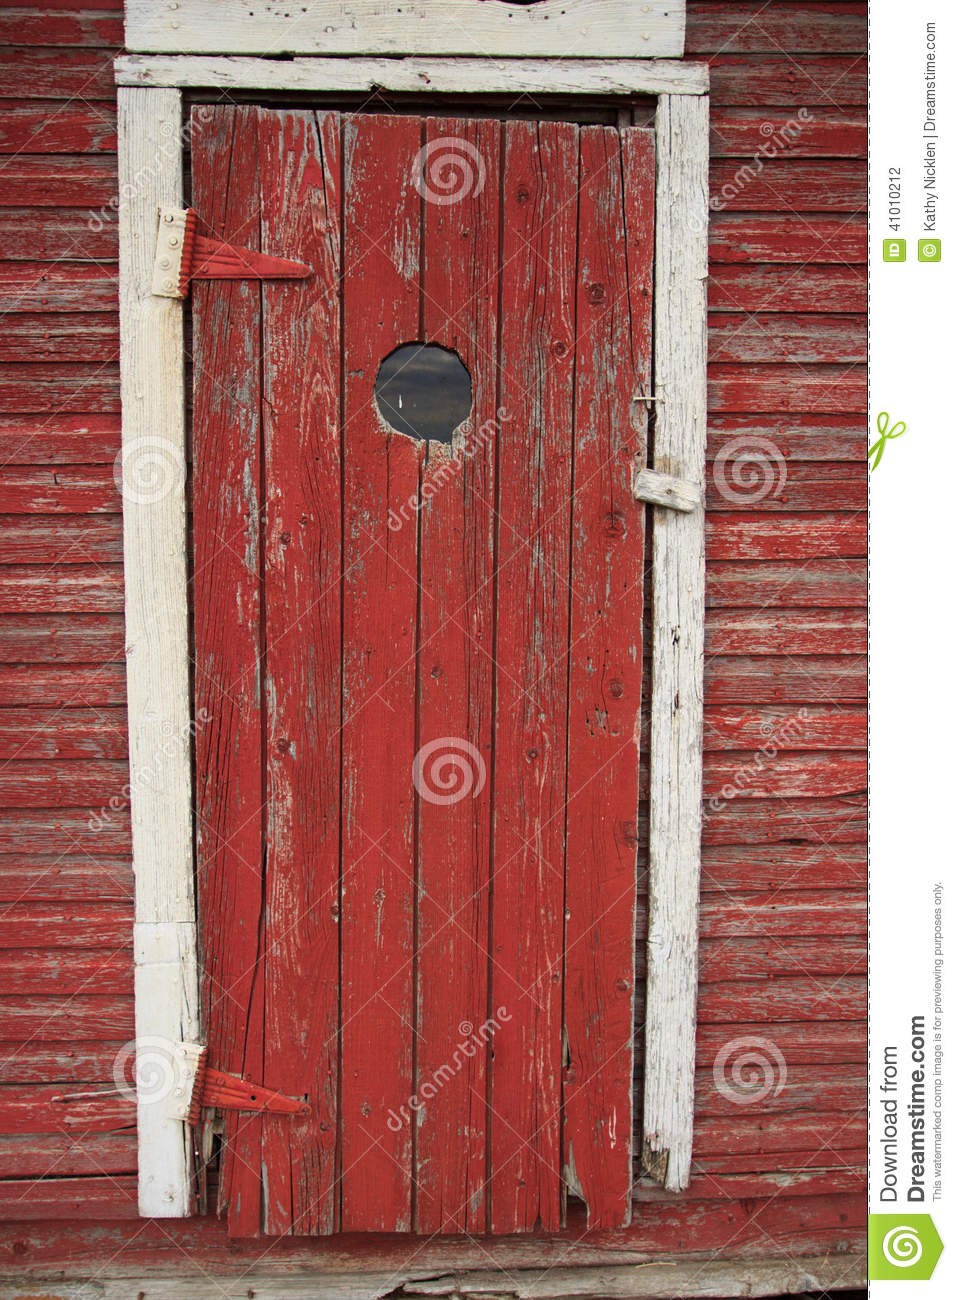 Peep Hole In Old Red Door Stock Photo Image Of High